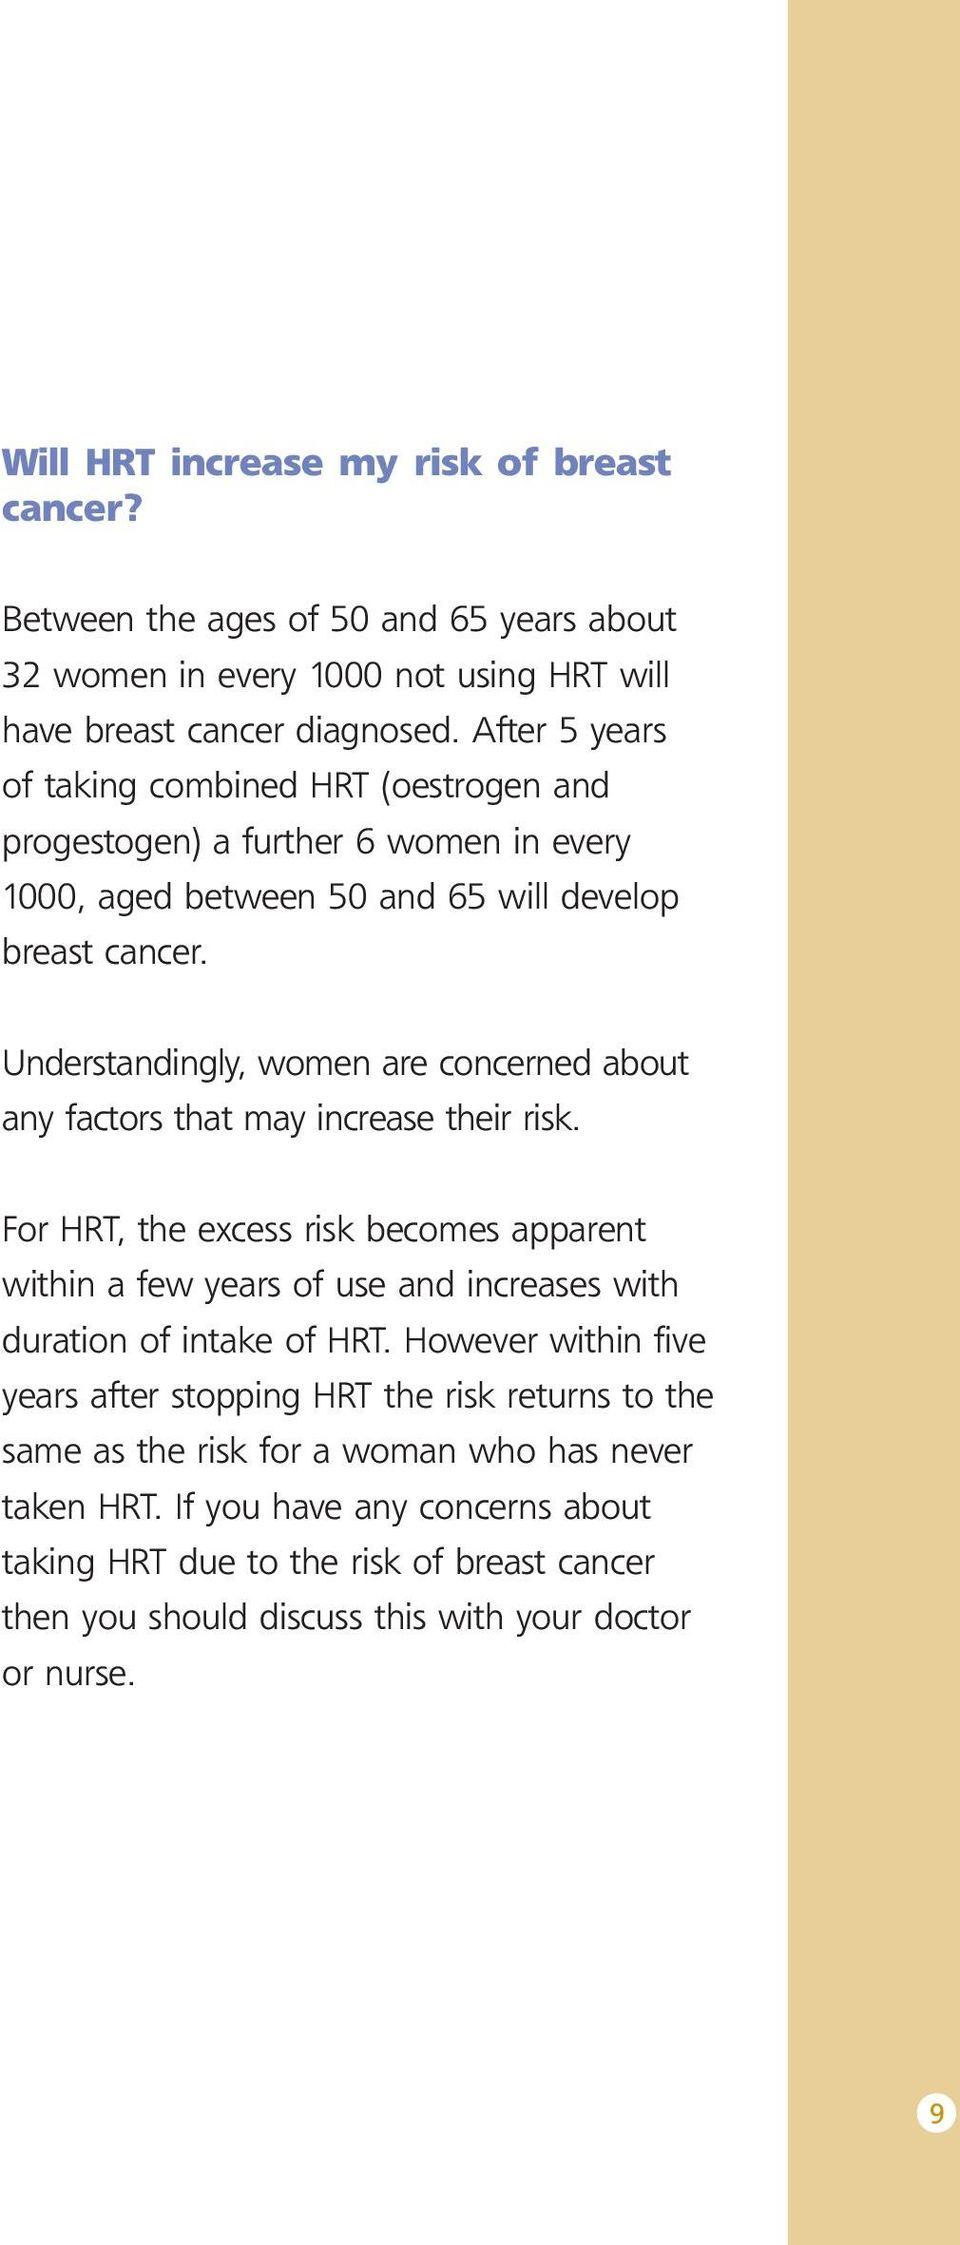 Understandingly, women are concerned about any factors that may increase their risk.